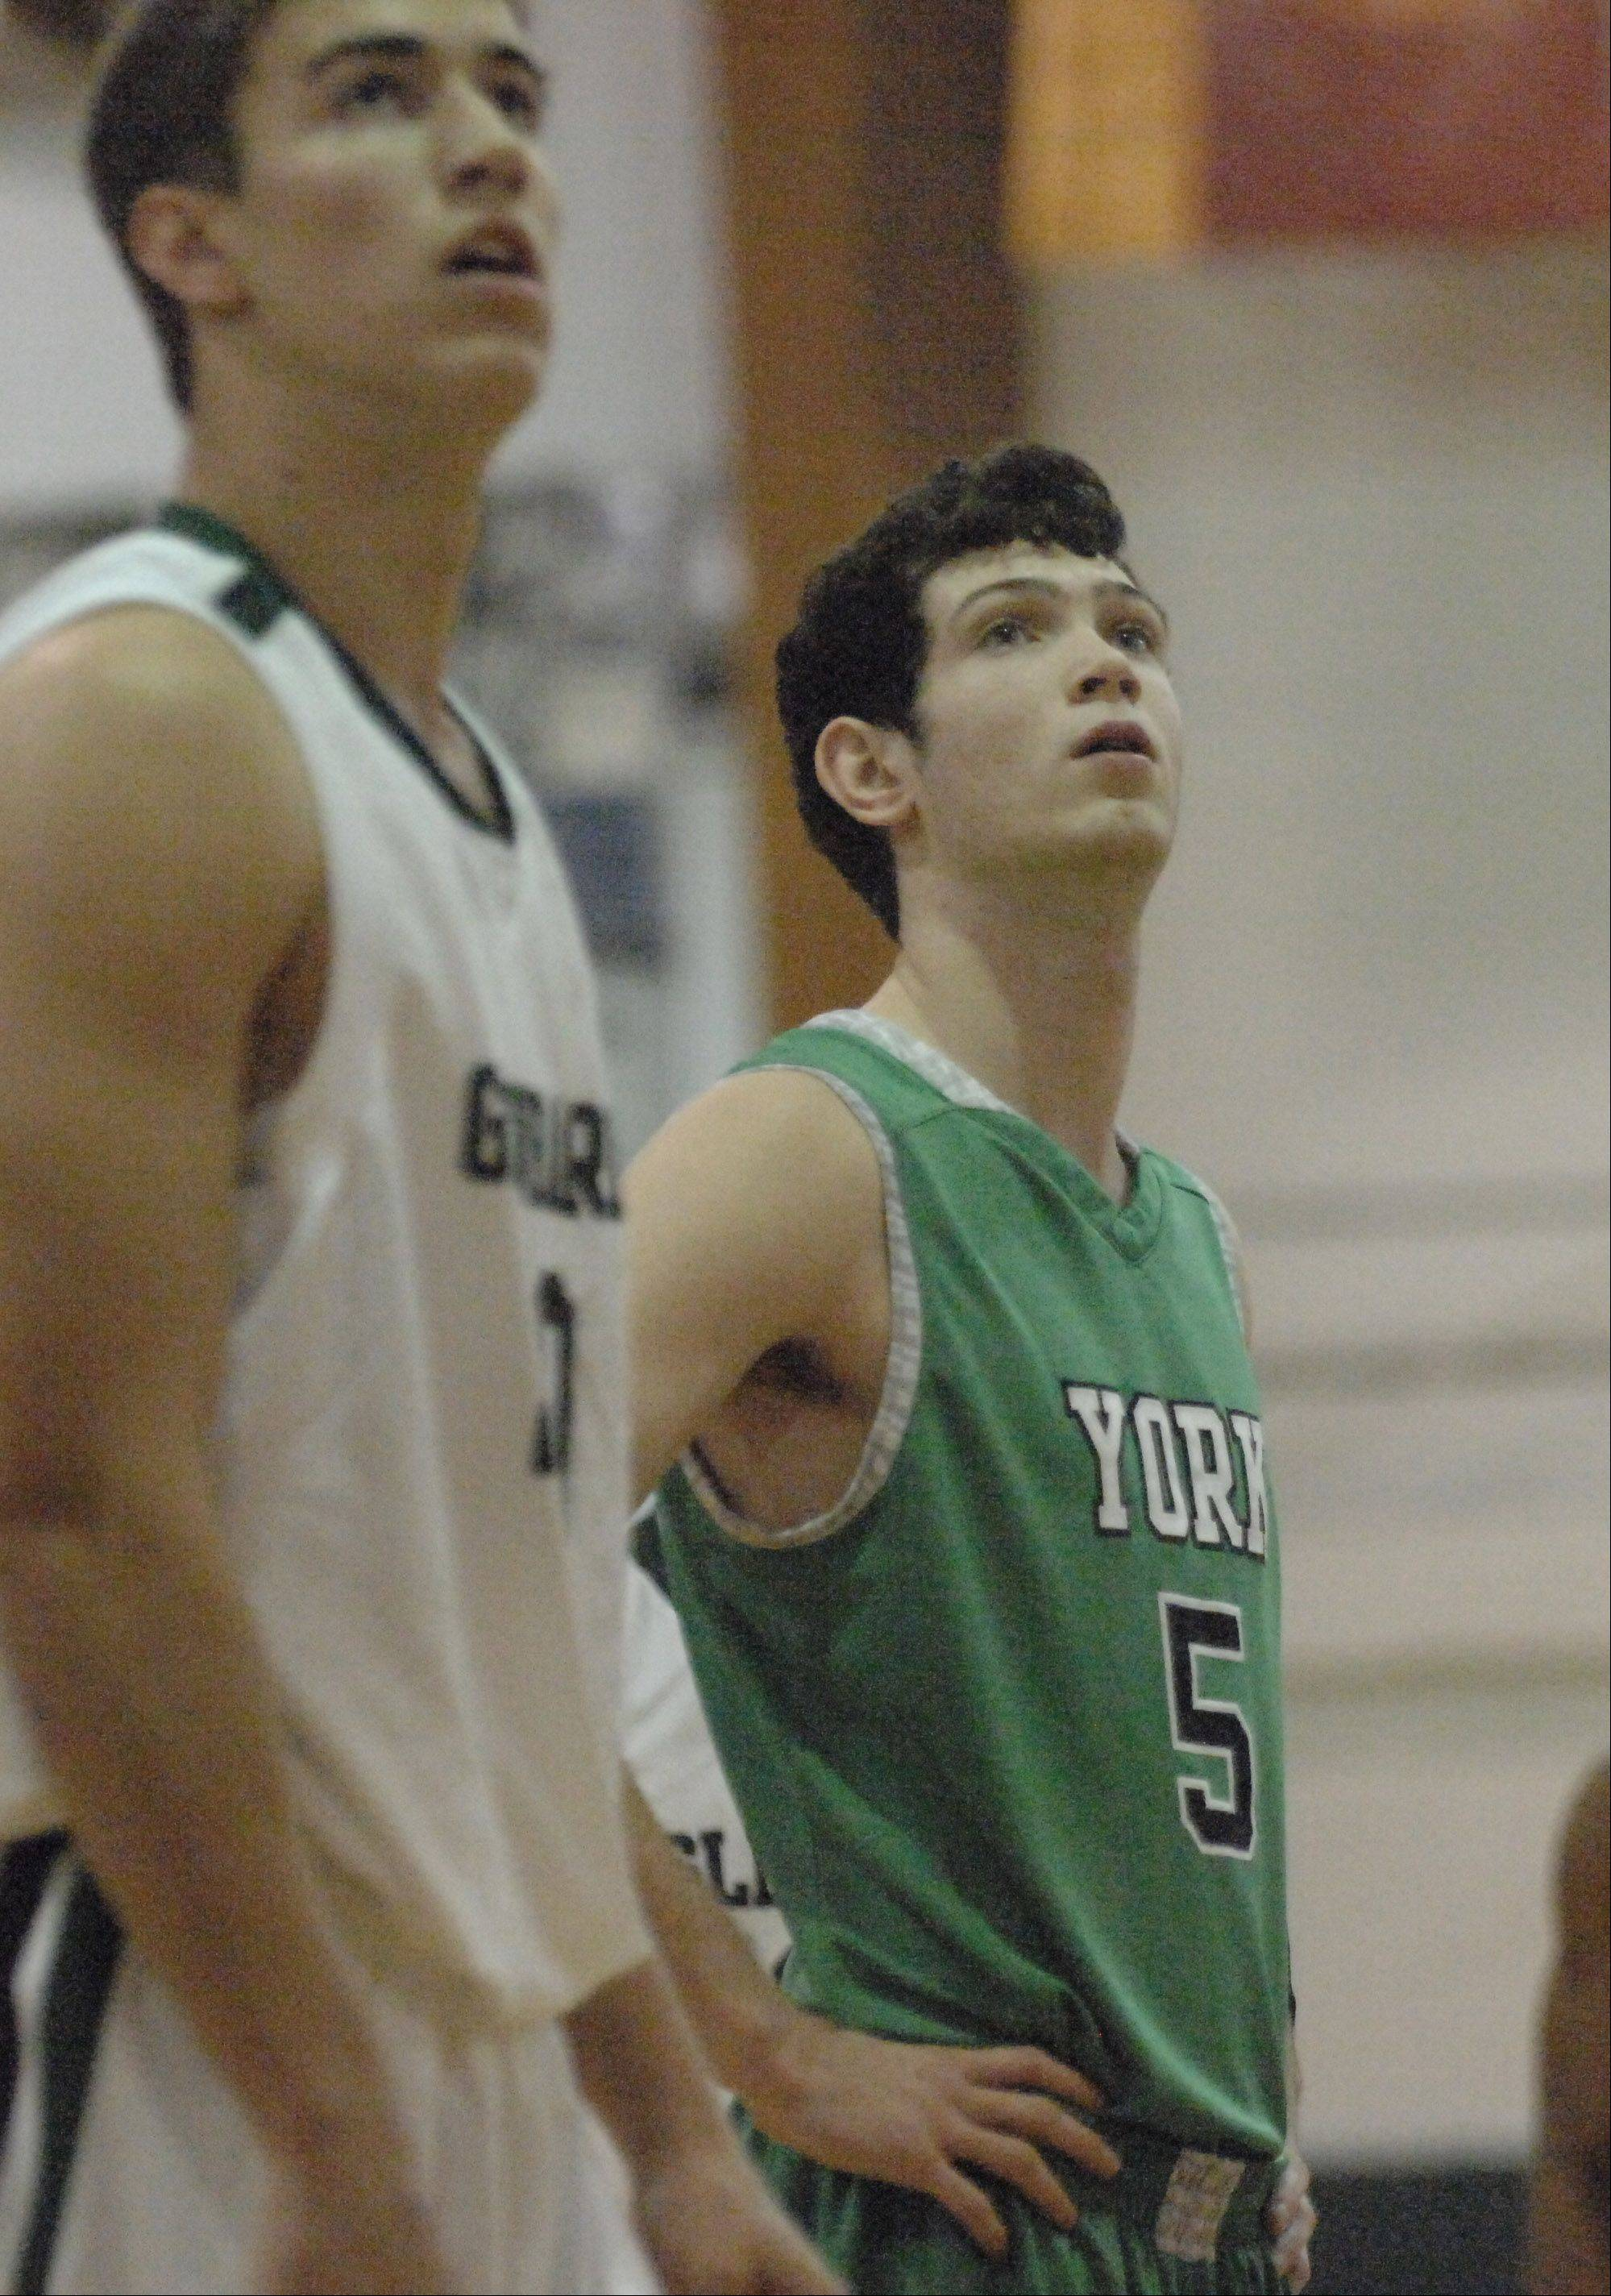 Paul Michna/pmichna@dailyherald.com � David Cohn of York takes part in the York at Glenbard West boys basketball game Friday.